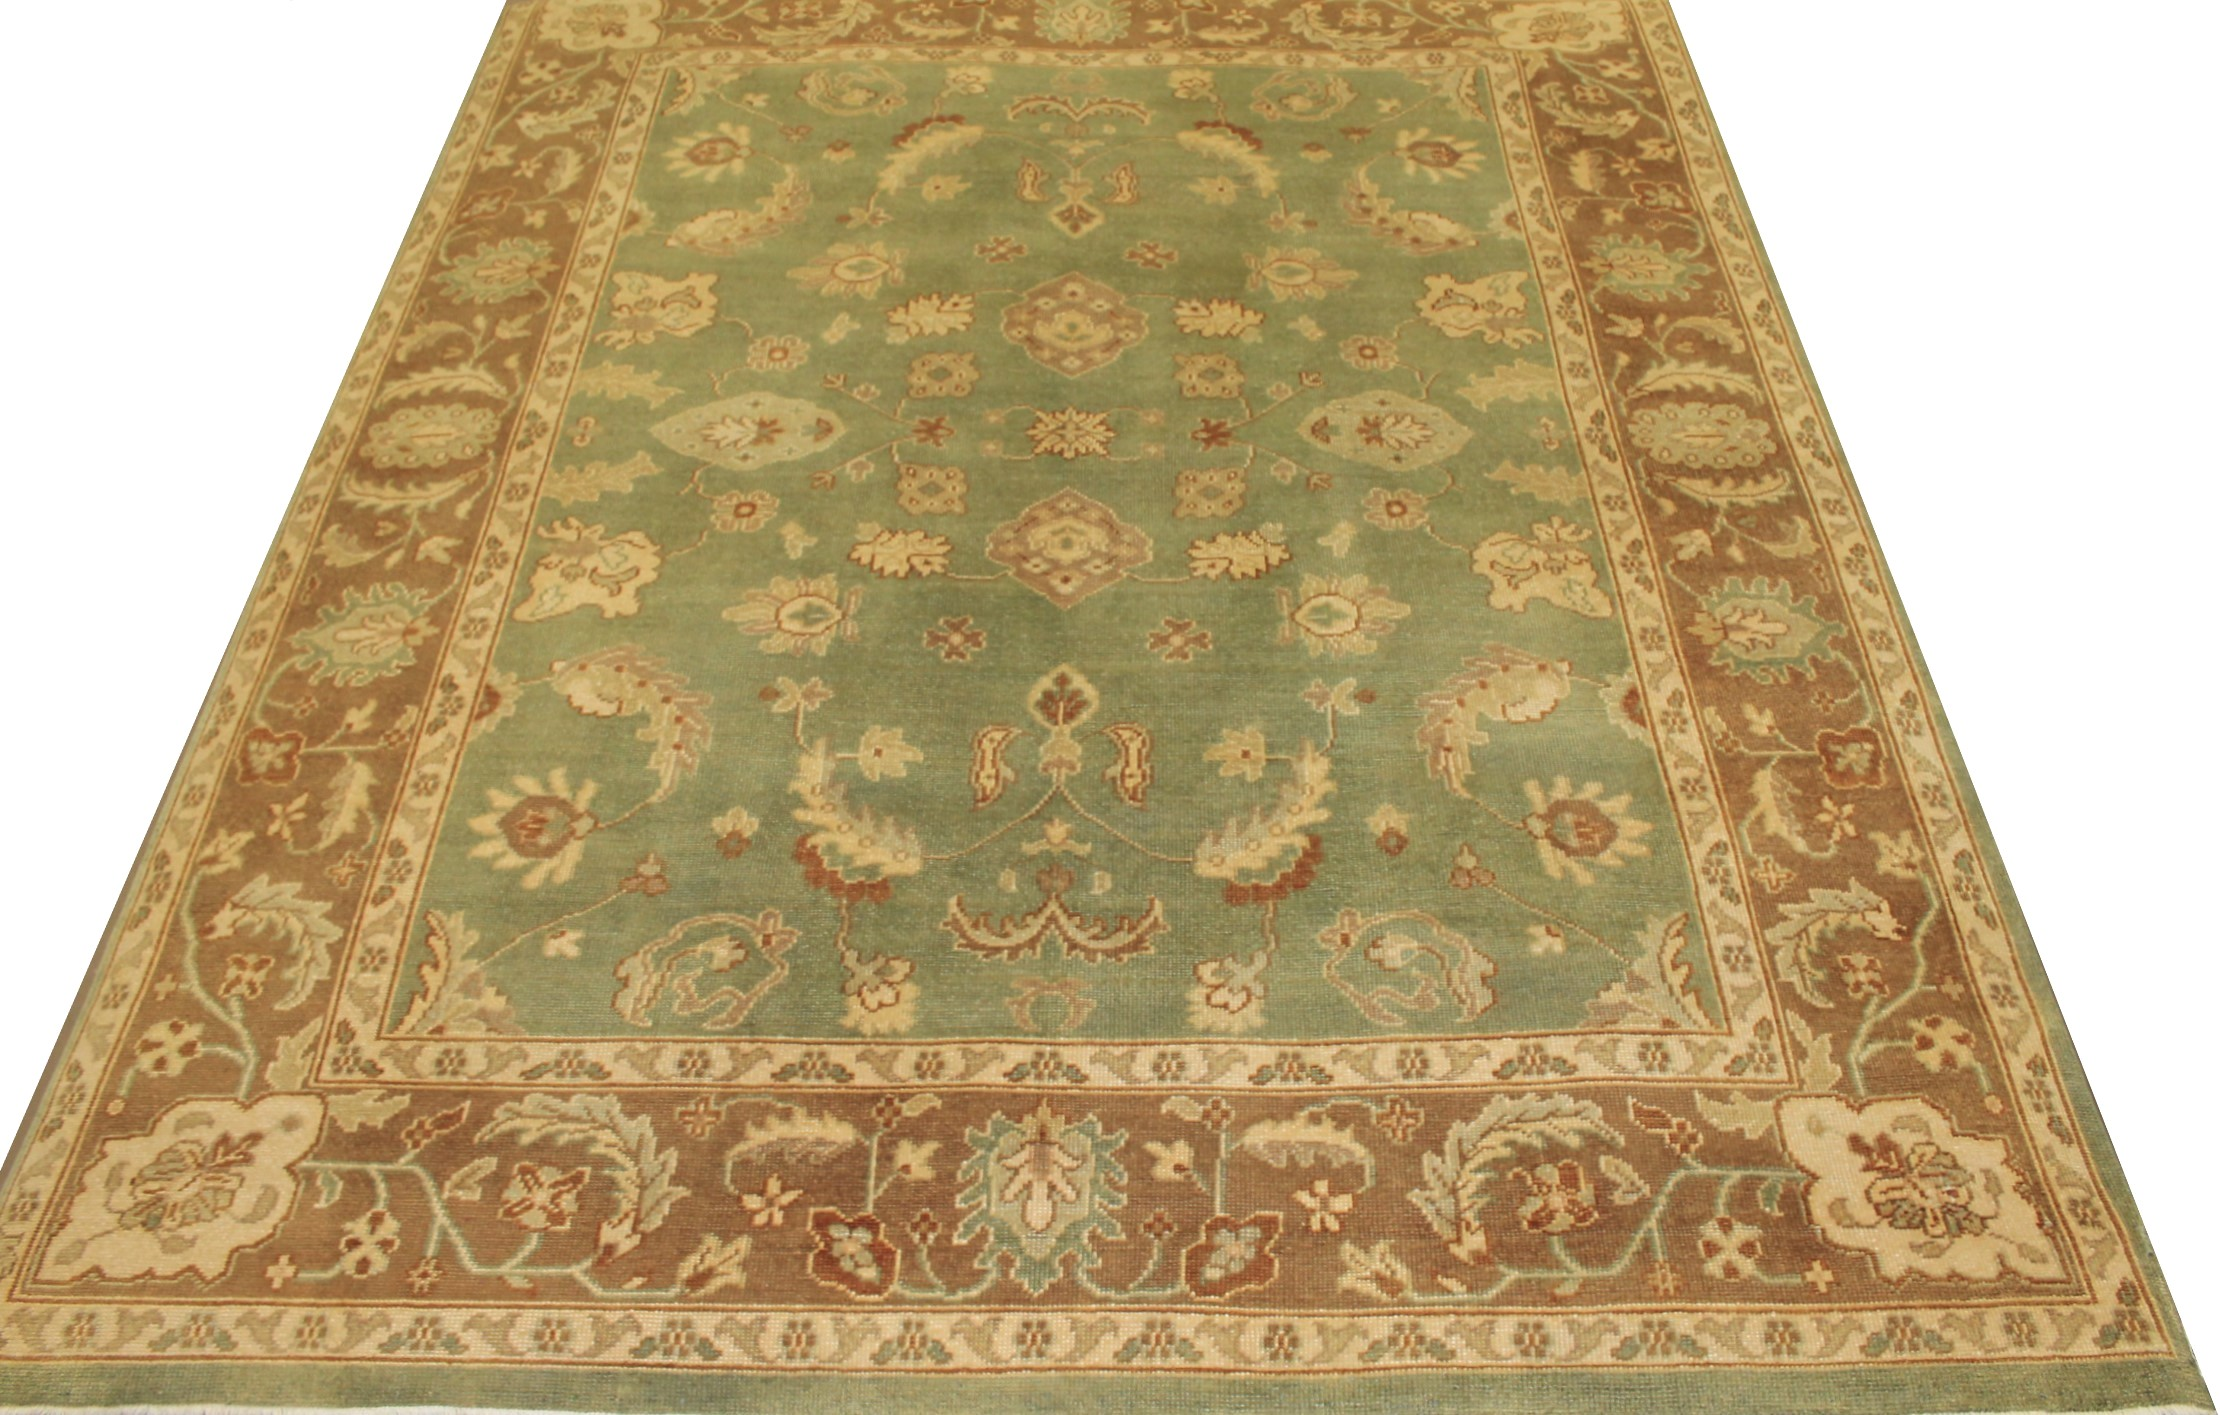 8x10 Oushak Hand Knotted Wool Area Rug - MR10088